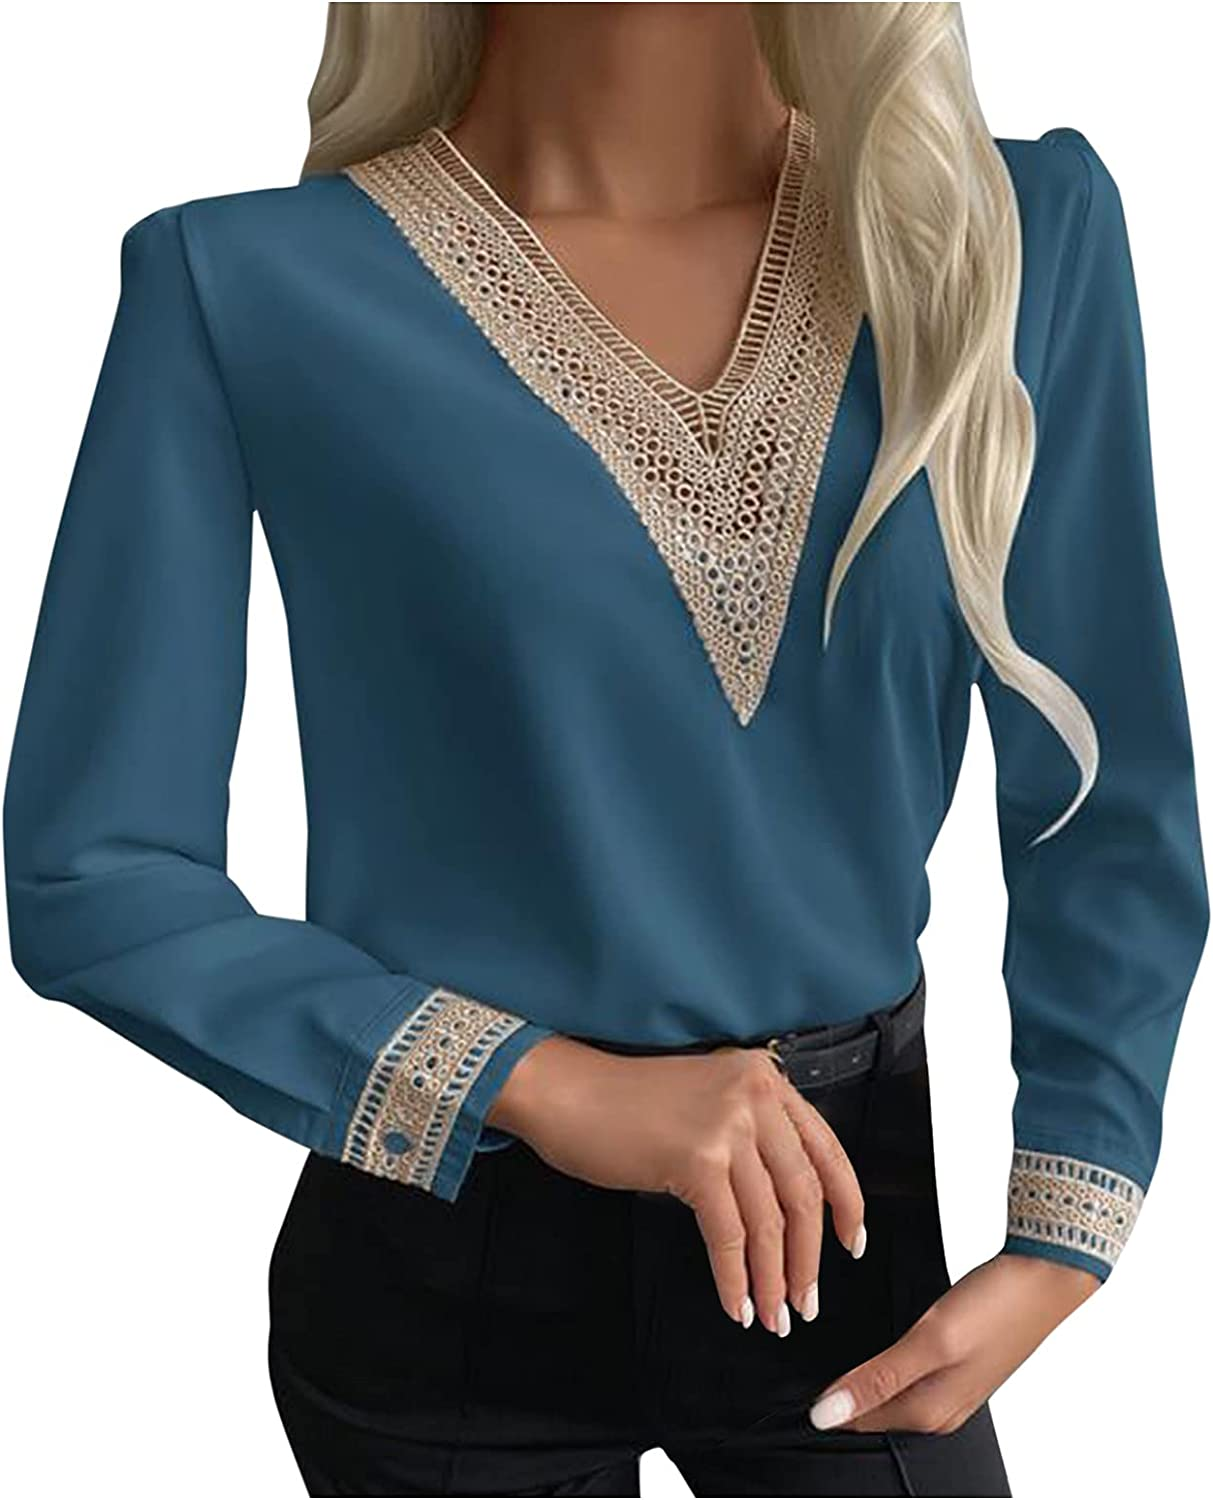 Fashion Women's Blouse Long Sleeve Solid Color Top Blouse Lace Patchwork V-Neck Casual Slim Fit Shirts